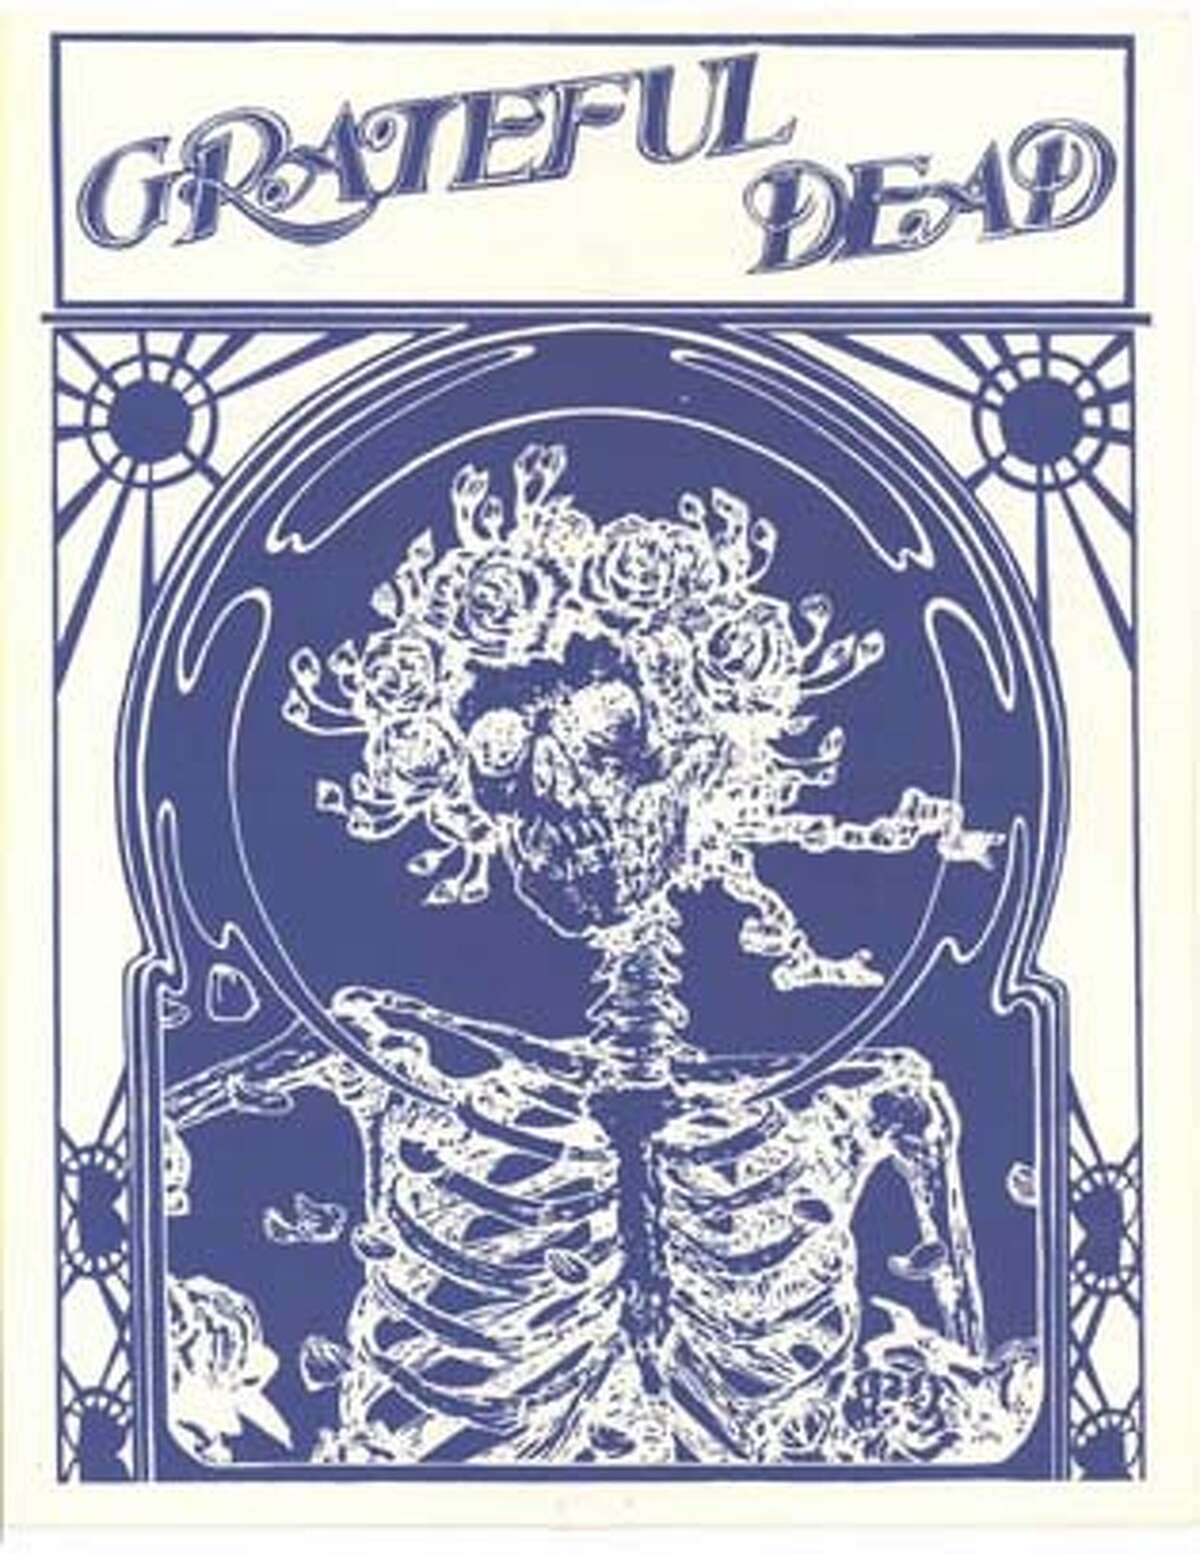 Cover of the Europe 1972 tour itinerary booklet. Photo courtesy of Grateful Dead archive